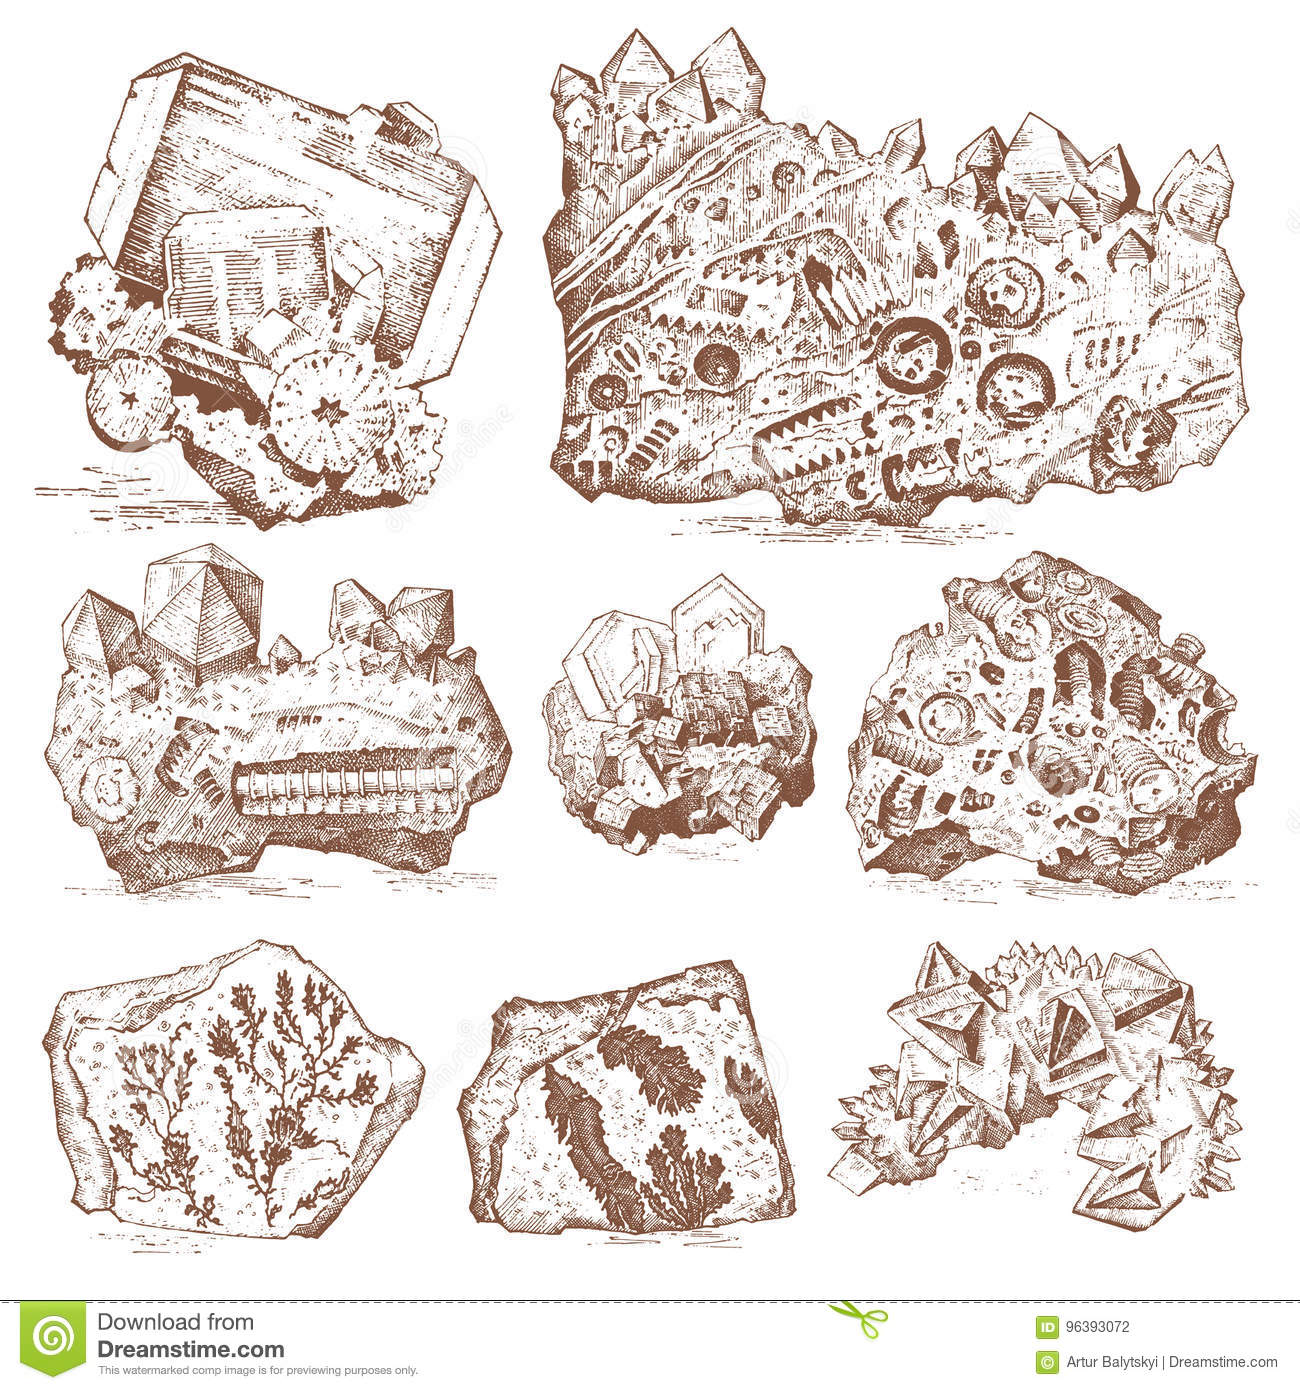 Fossilized plants, stones and minerals, crystals, prehistoric animals, archeology or paleontology. fragment fossils